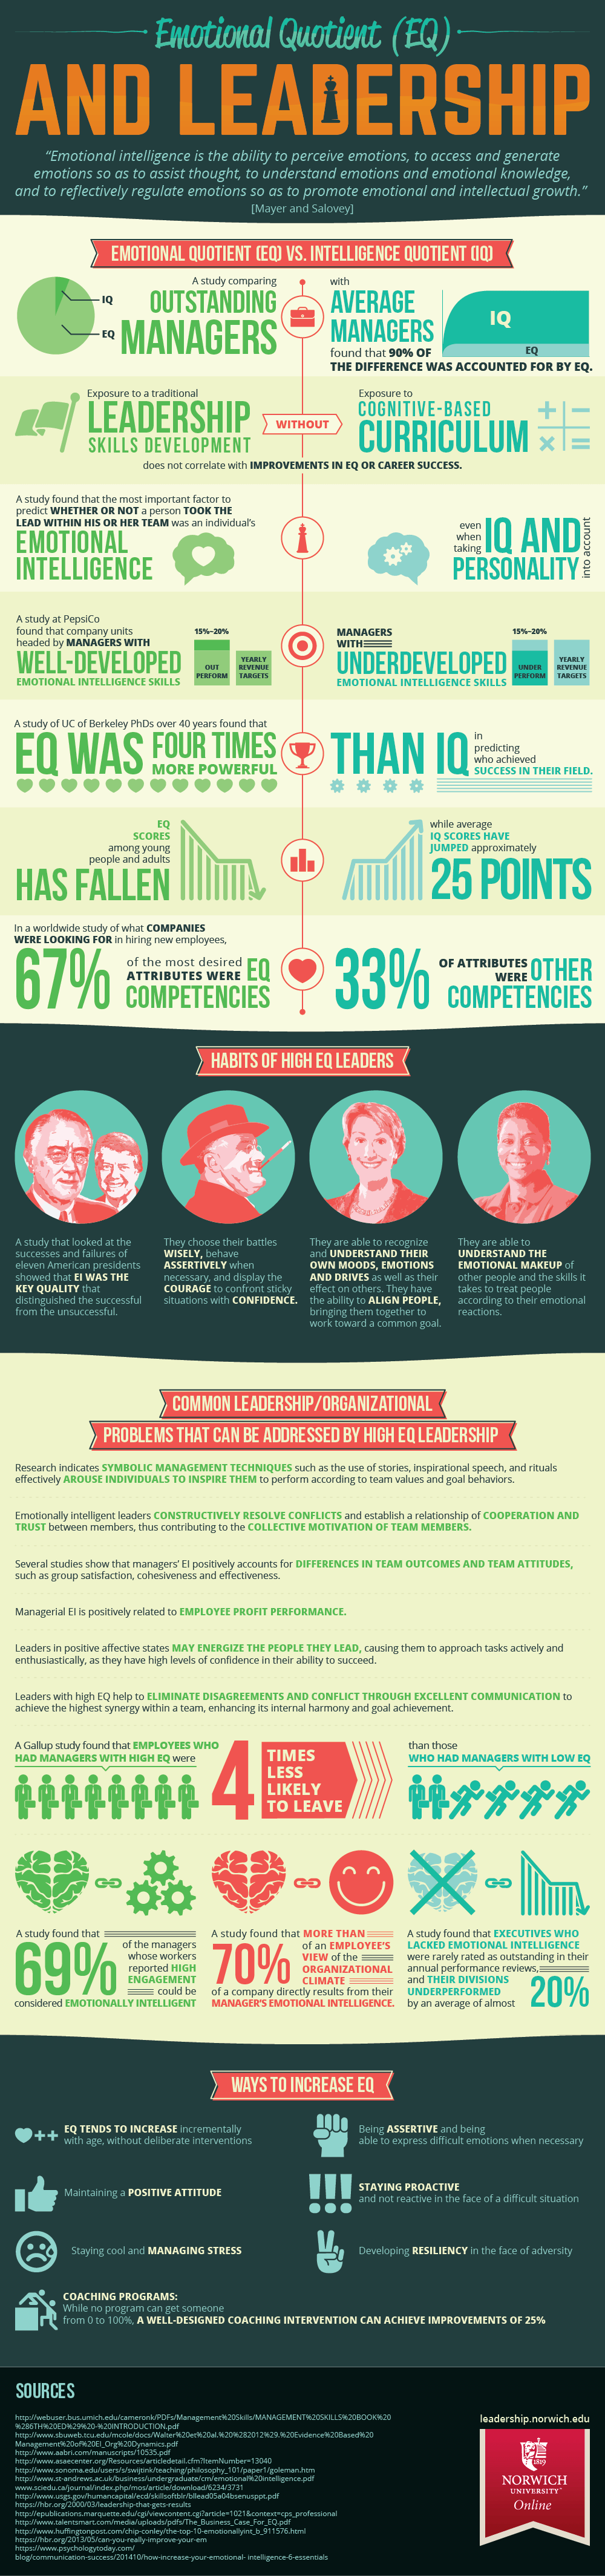 Emotional Intelligence and Leadership Infographic